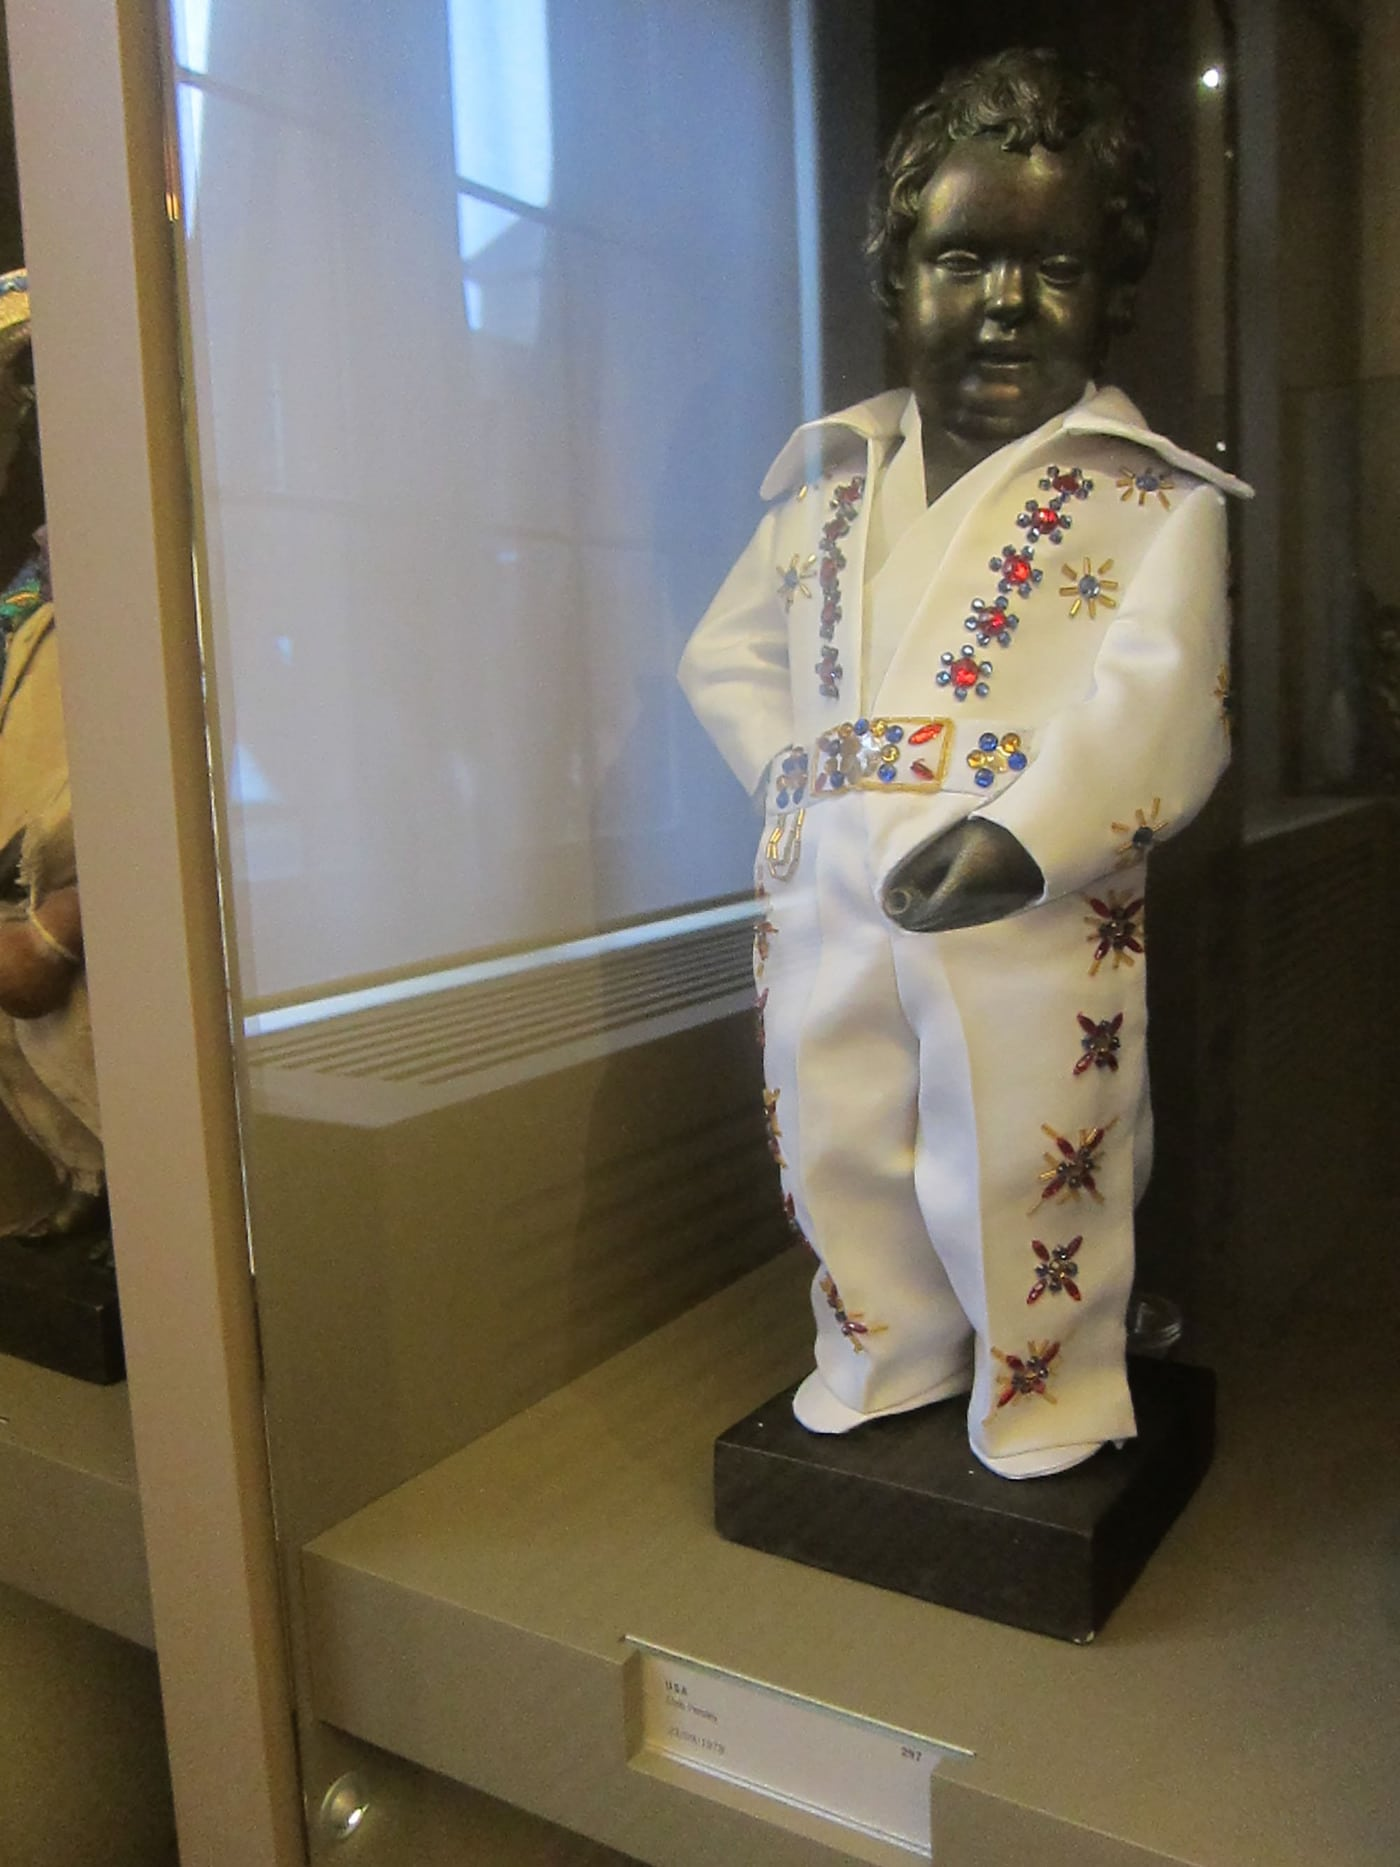 Manneken Pis's wardrobe at the City Museum in Brussels, Belgium